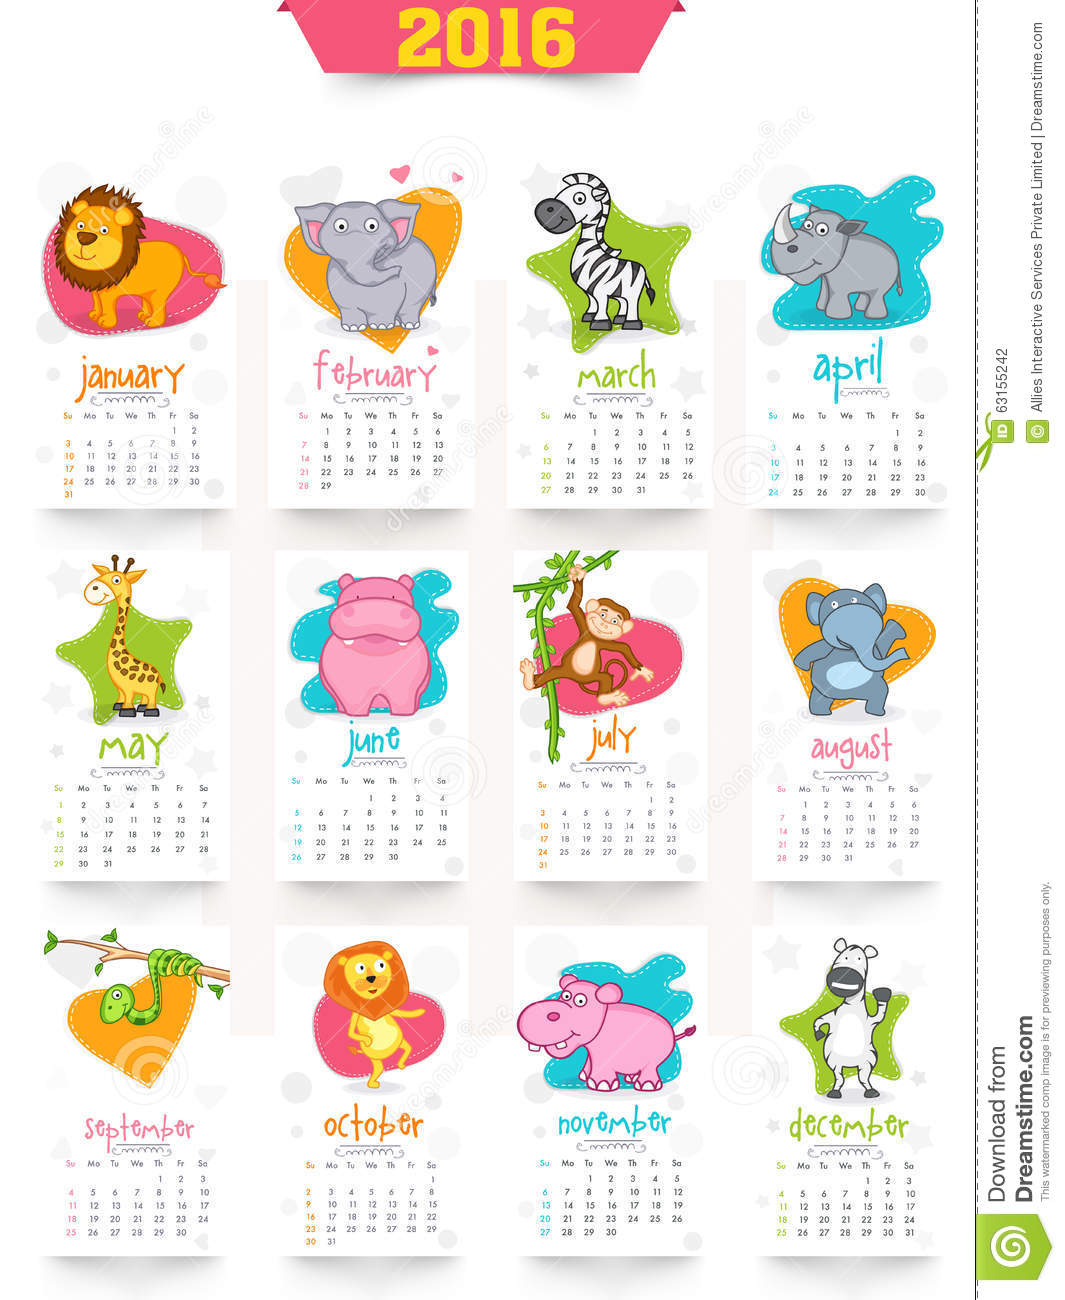 New Year Calendar Design : Creative yearly calendar for new year celebration